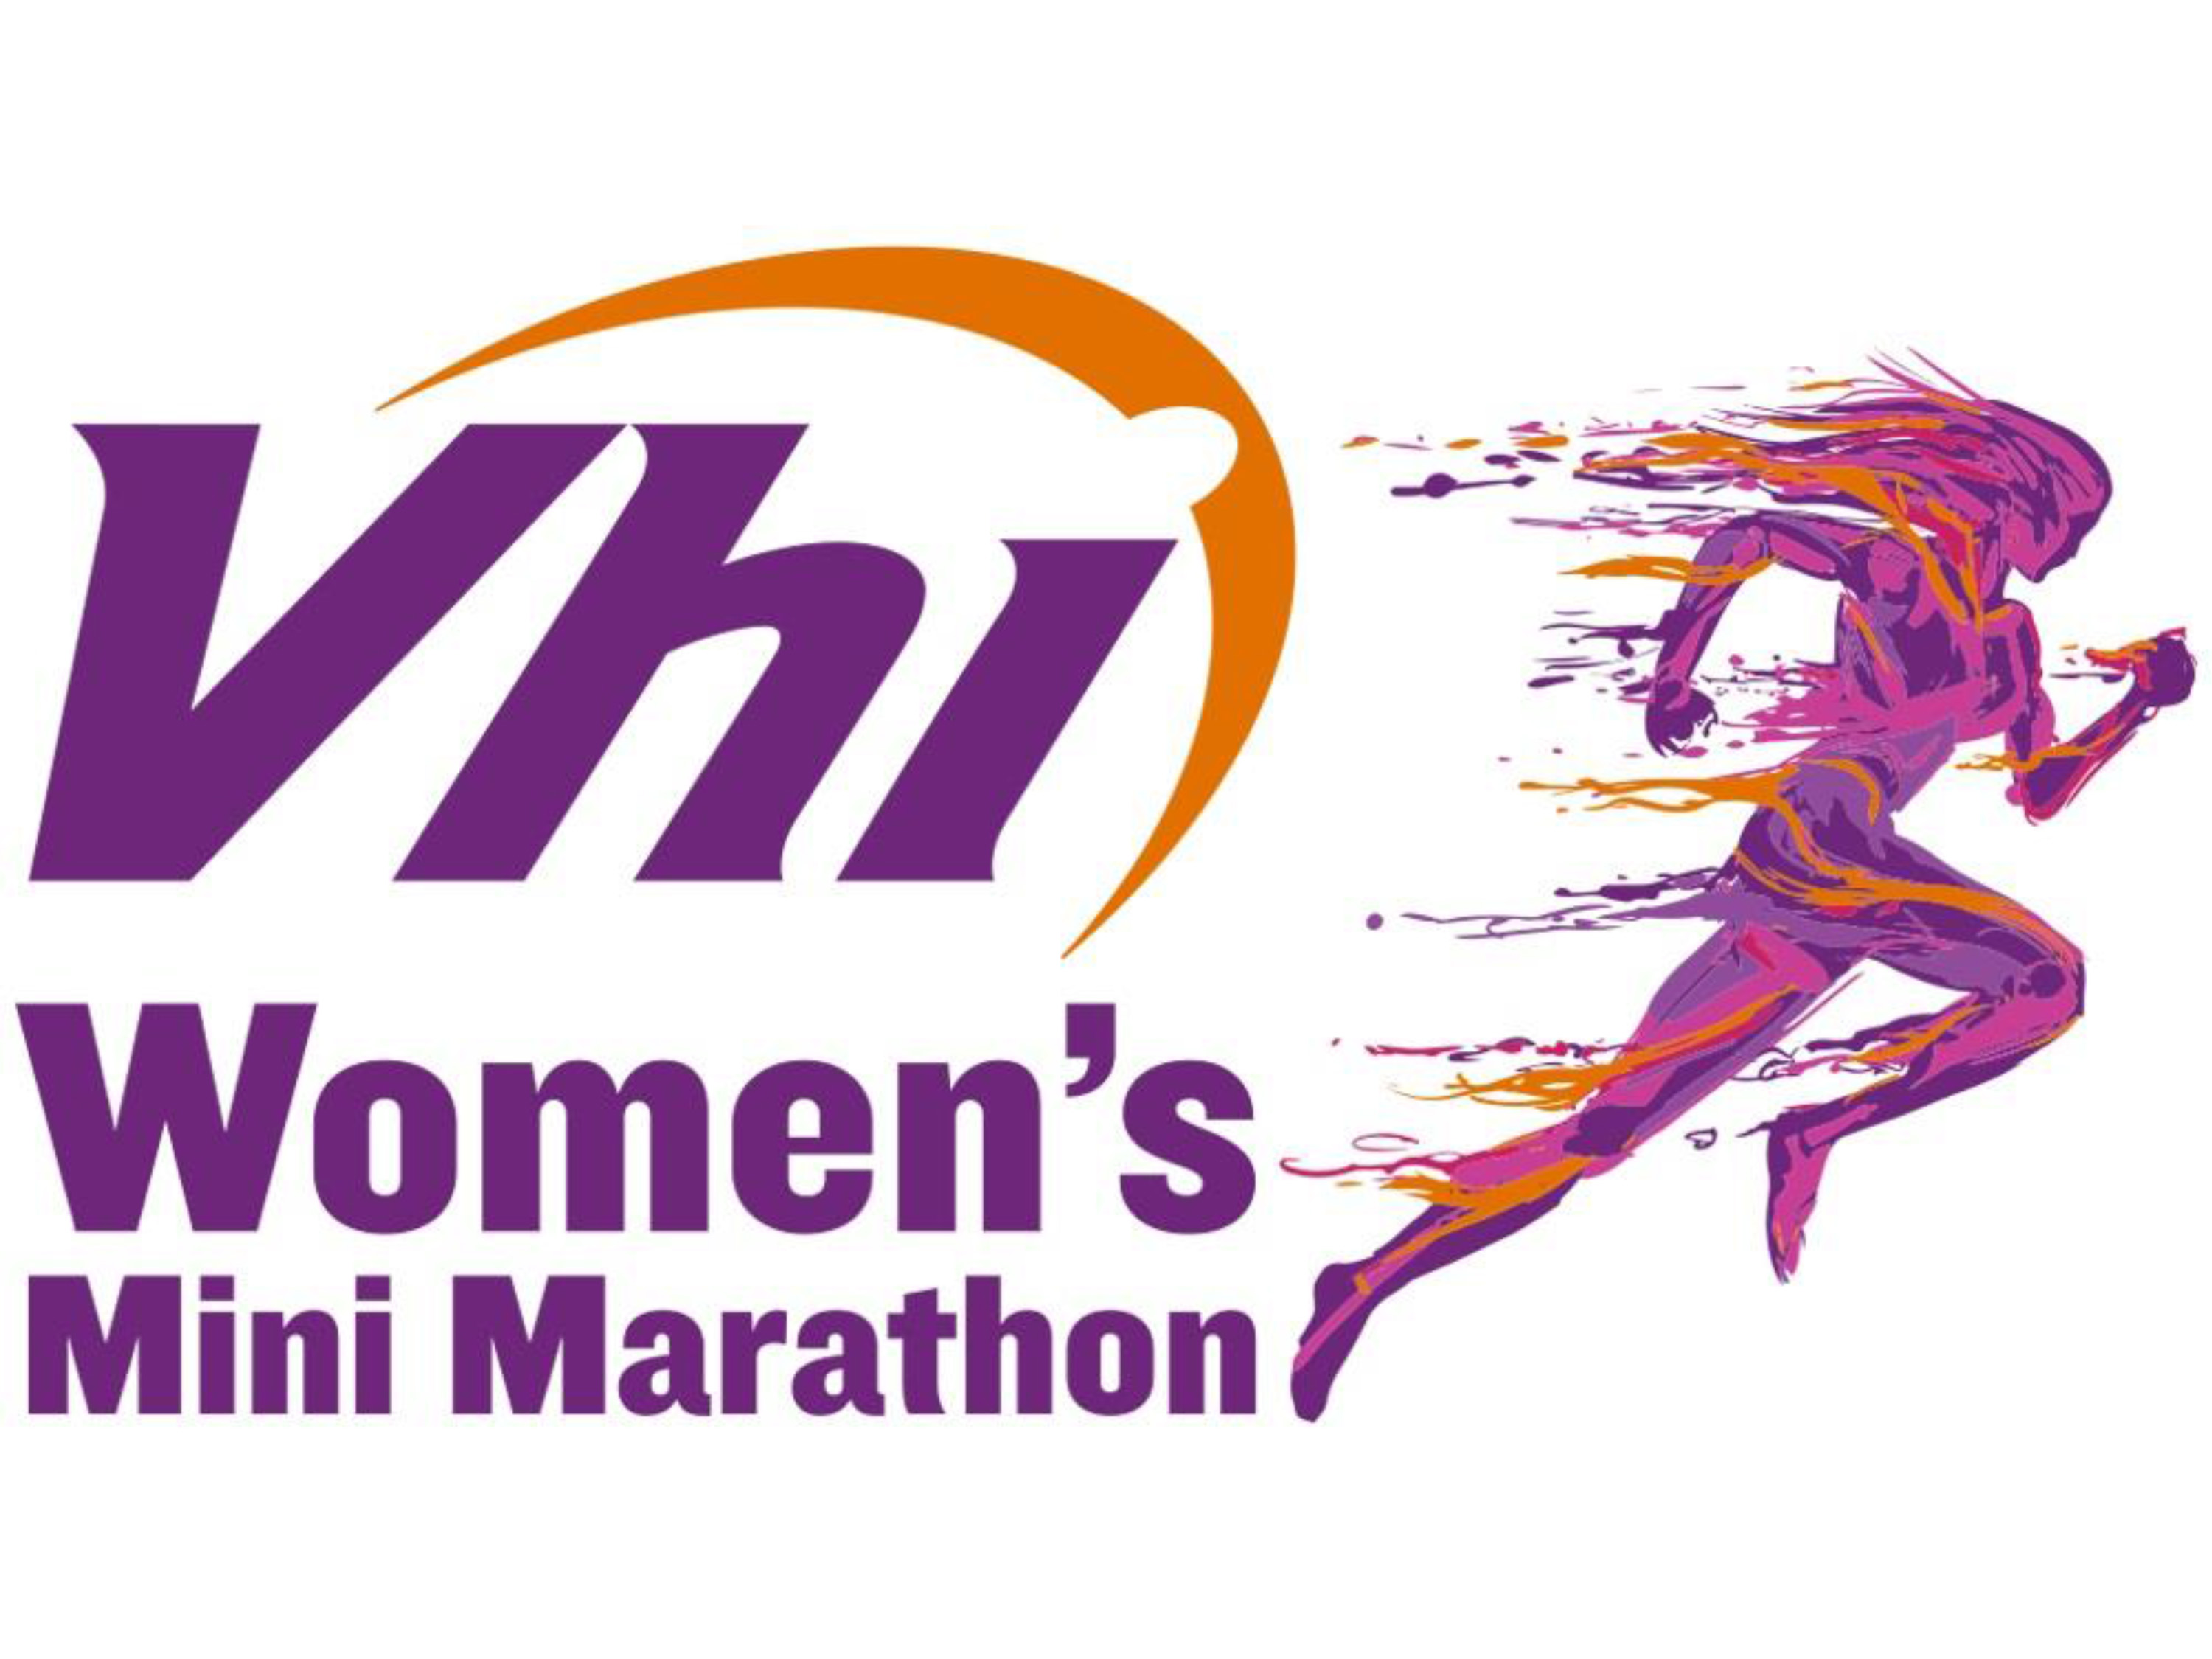 Vhi-WMM-Official-Logo